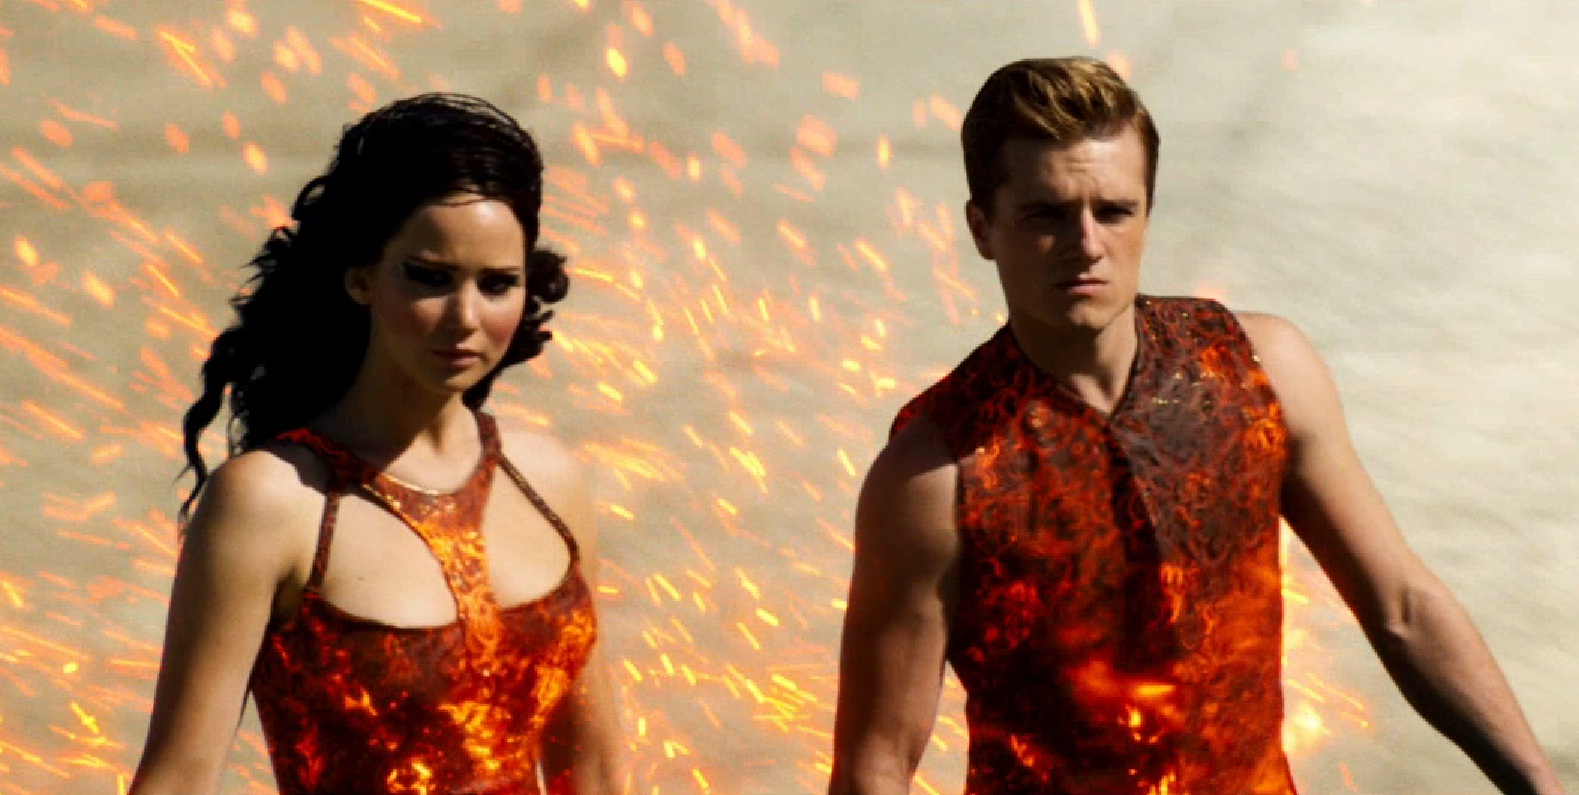 catching fire trailer